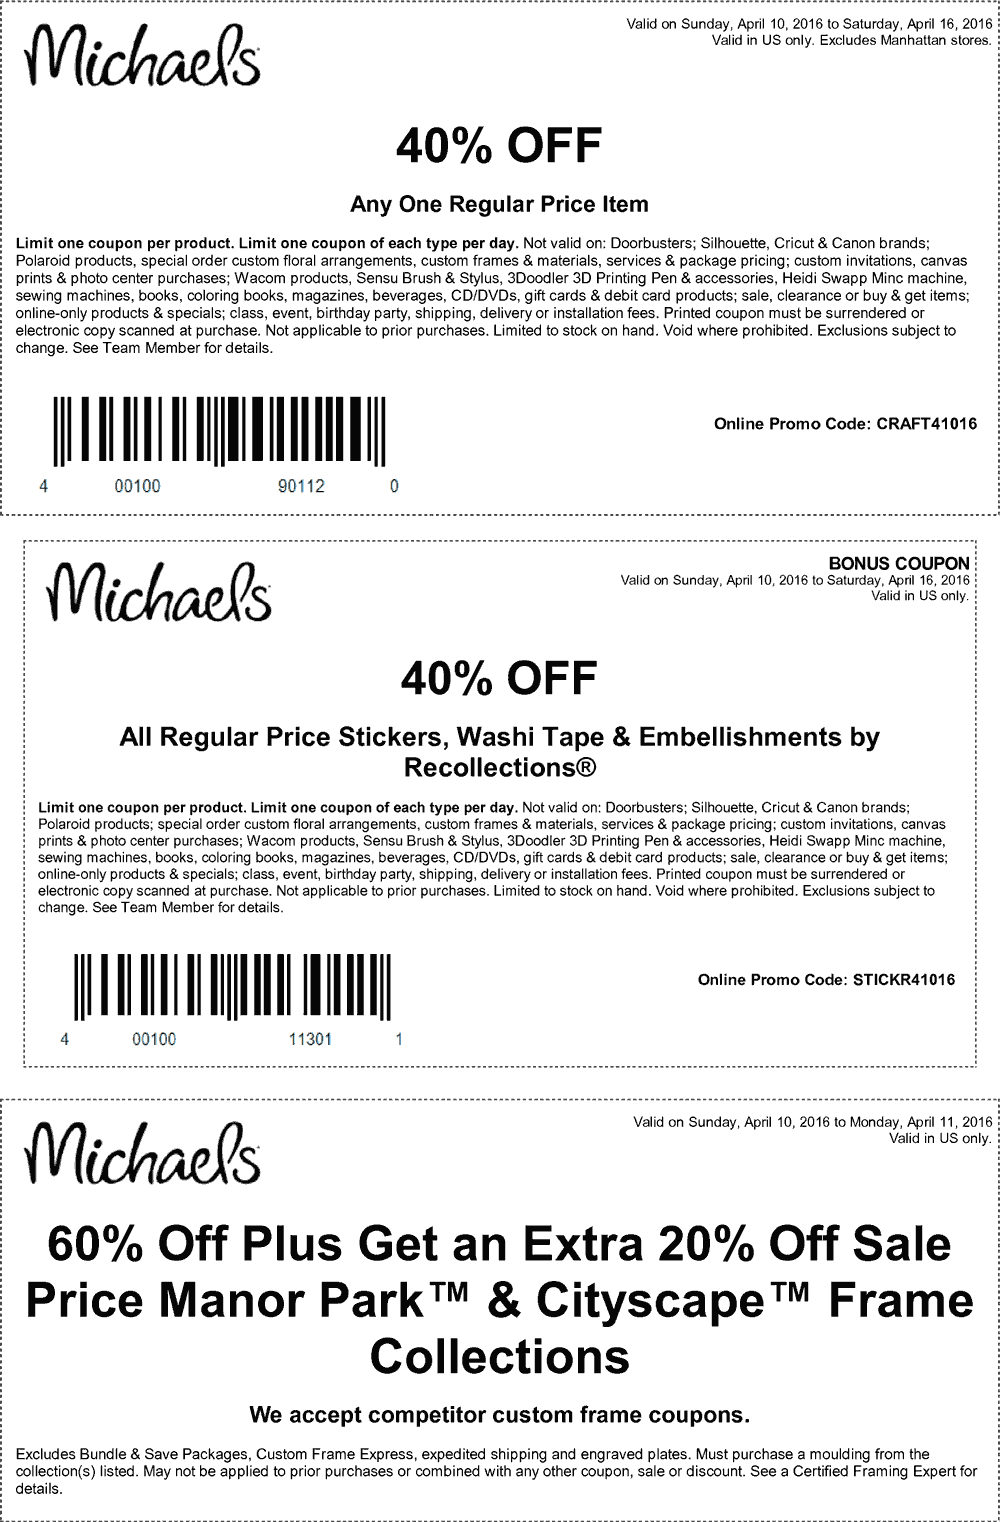 Michaels Coupon August 2017 40% off a single item & more at Michaels, or online via promo code CRAFT41016